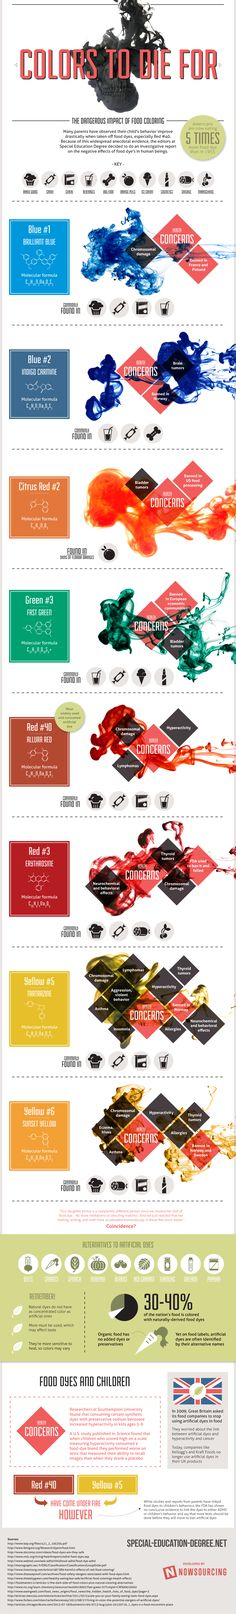 Infographic: Just How Dangerous Is The Dye In Your Food?   Co.Design   business + innovation + design